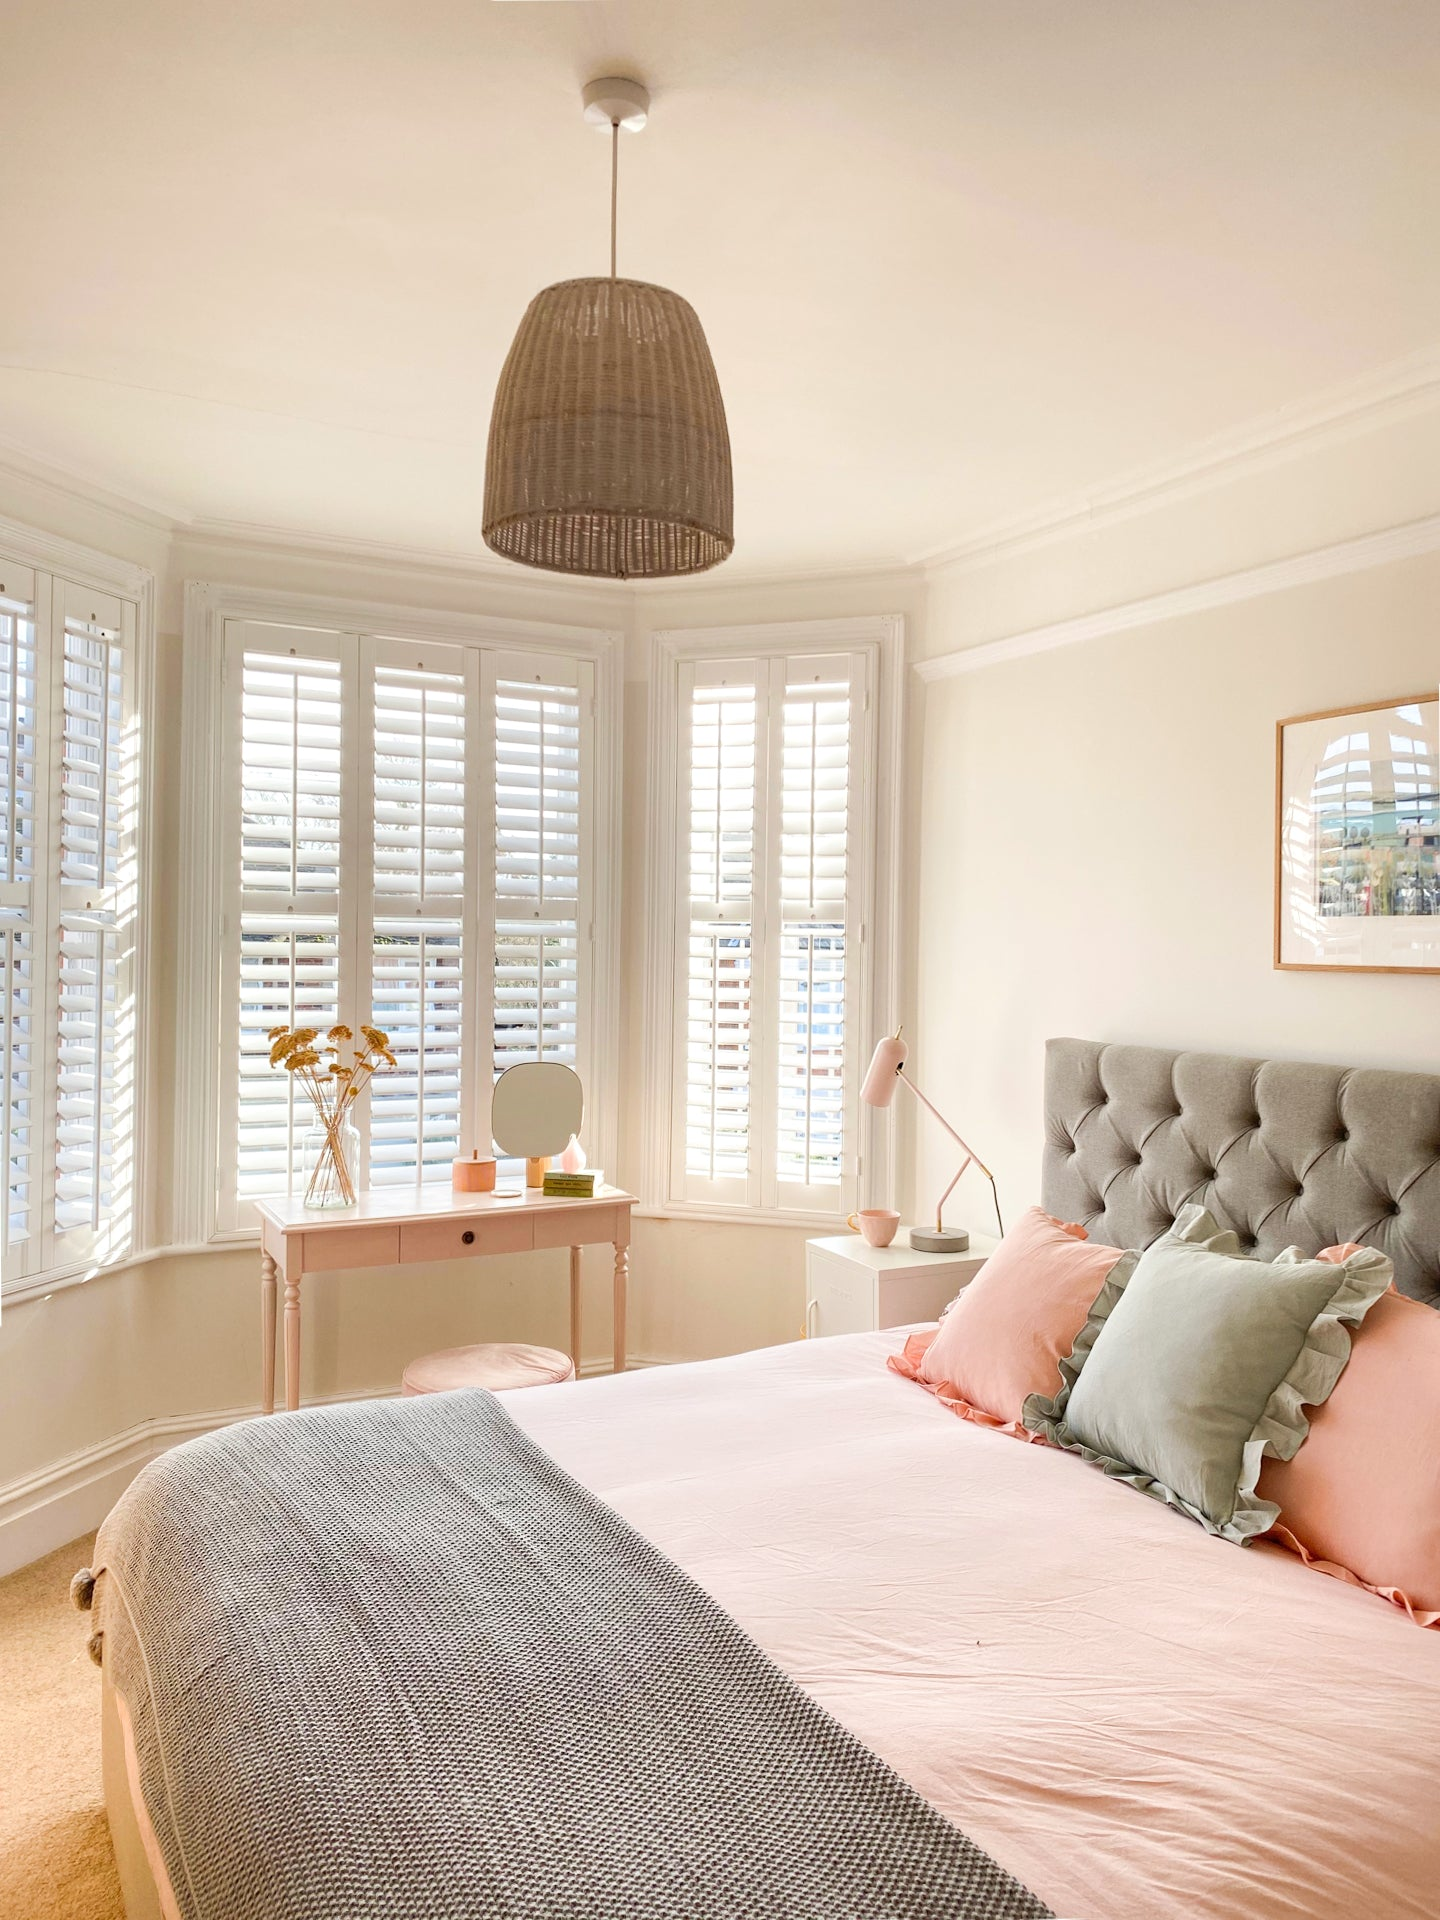 Clement Browne Bay Window Shutters At Home With Rose Instagram Interiors Influencer